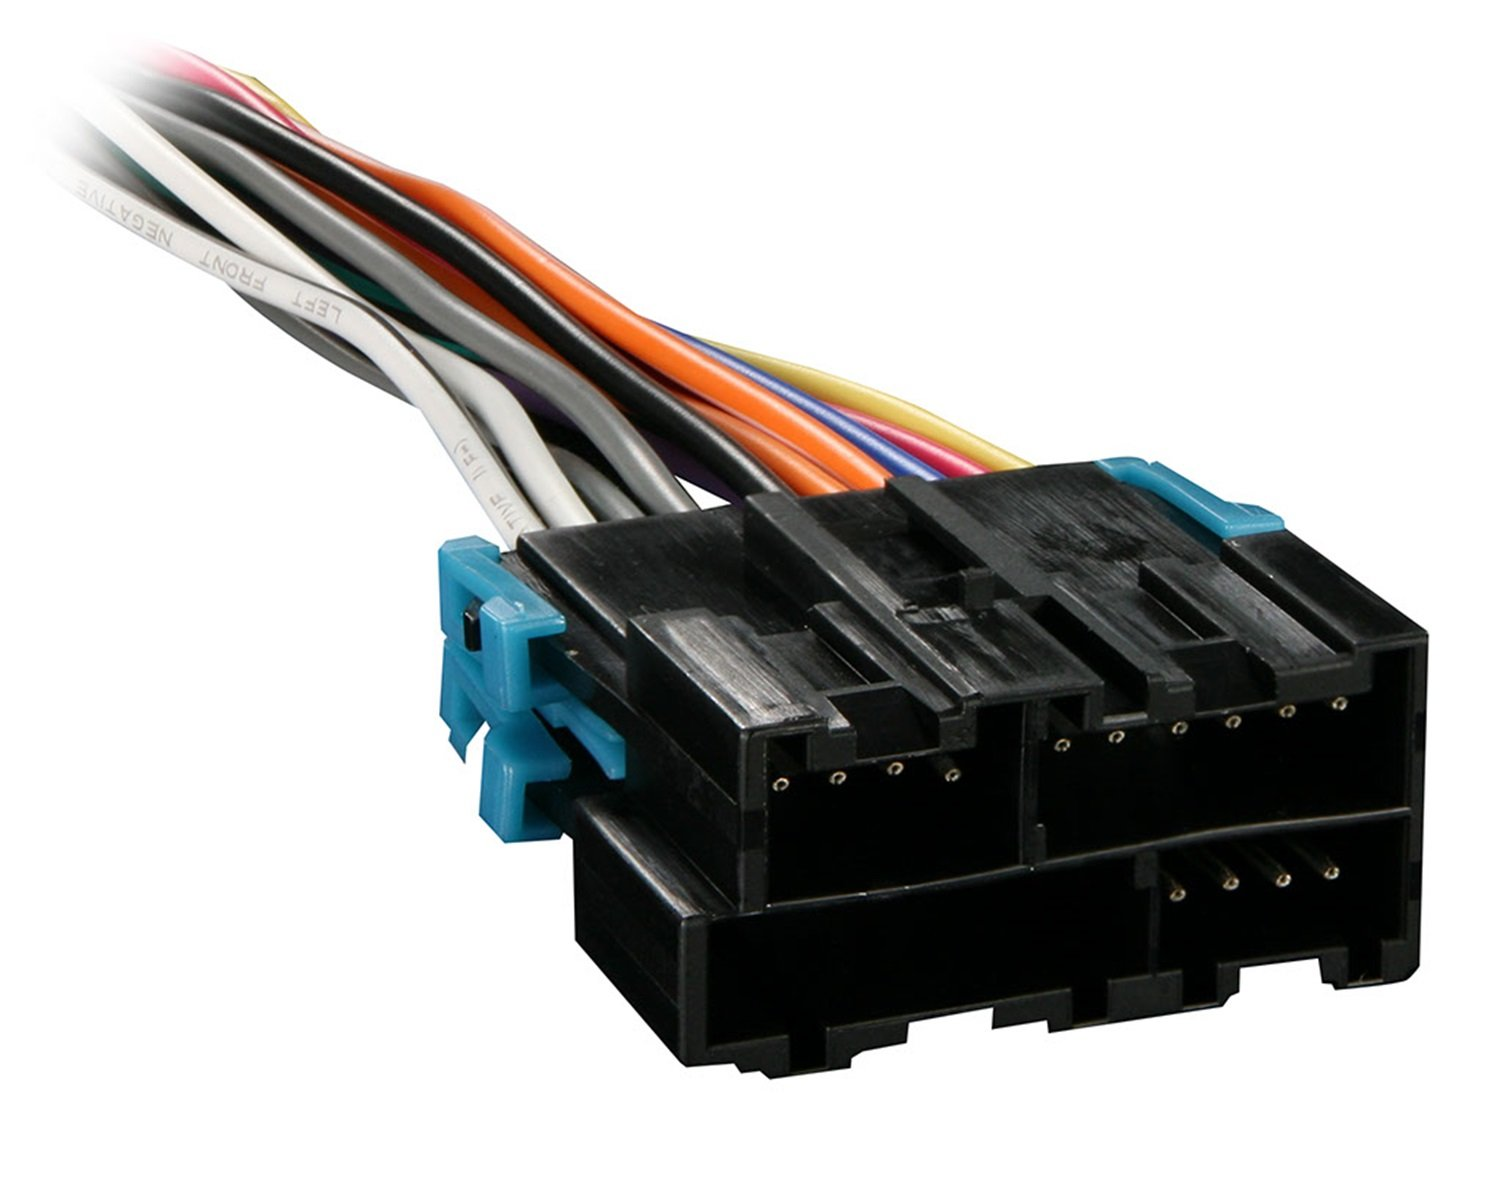 61 CwjZt1hL._SL1500_ radio wiring harnesses amazon com wiring harness for car stereo installation at edmiracle.co